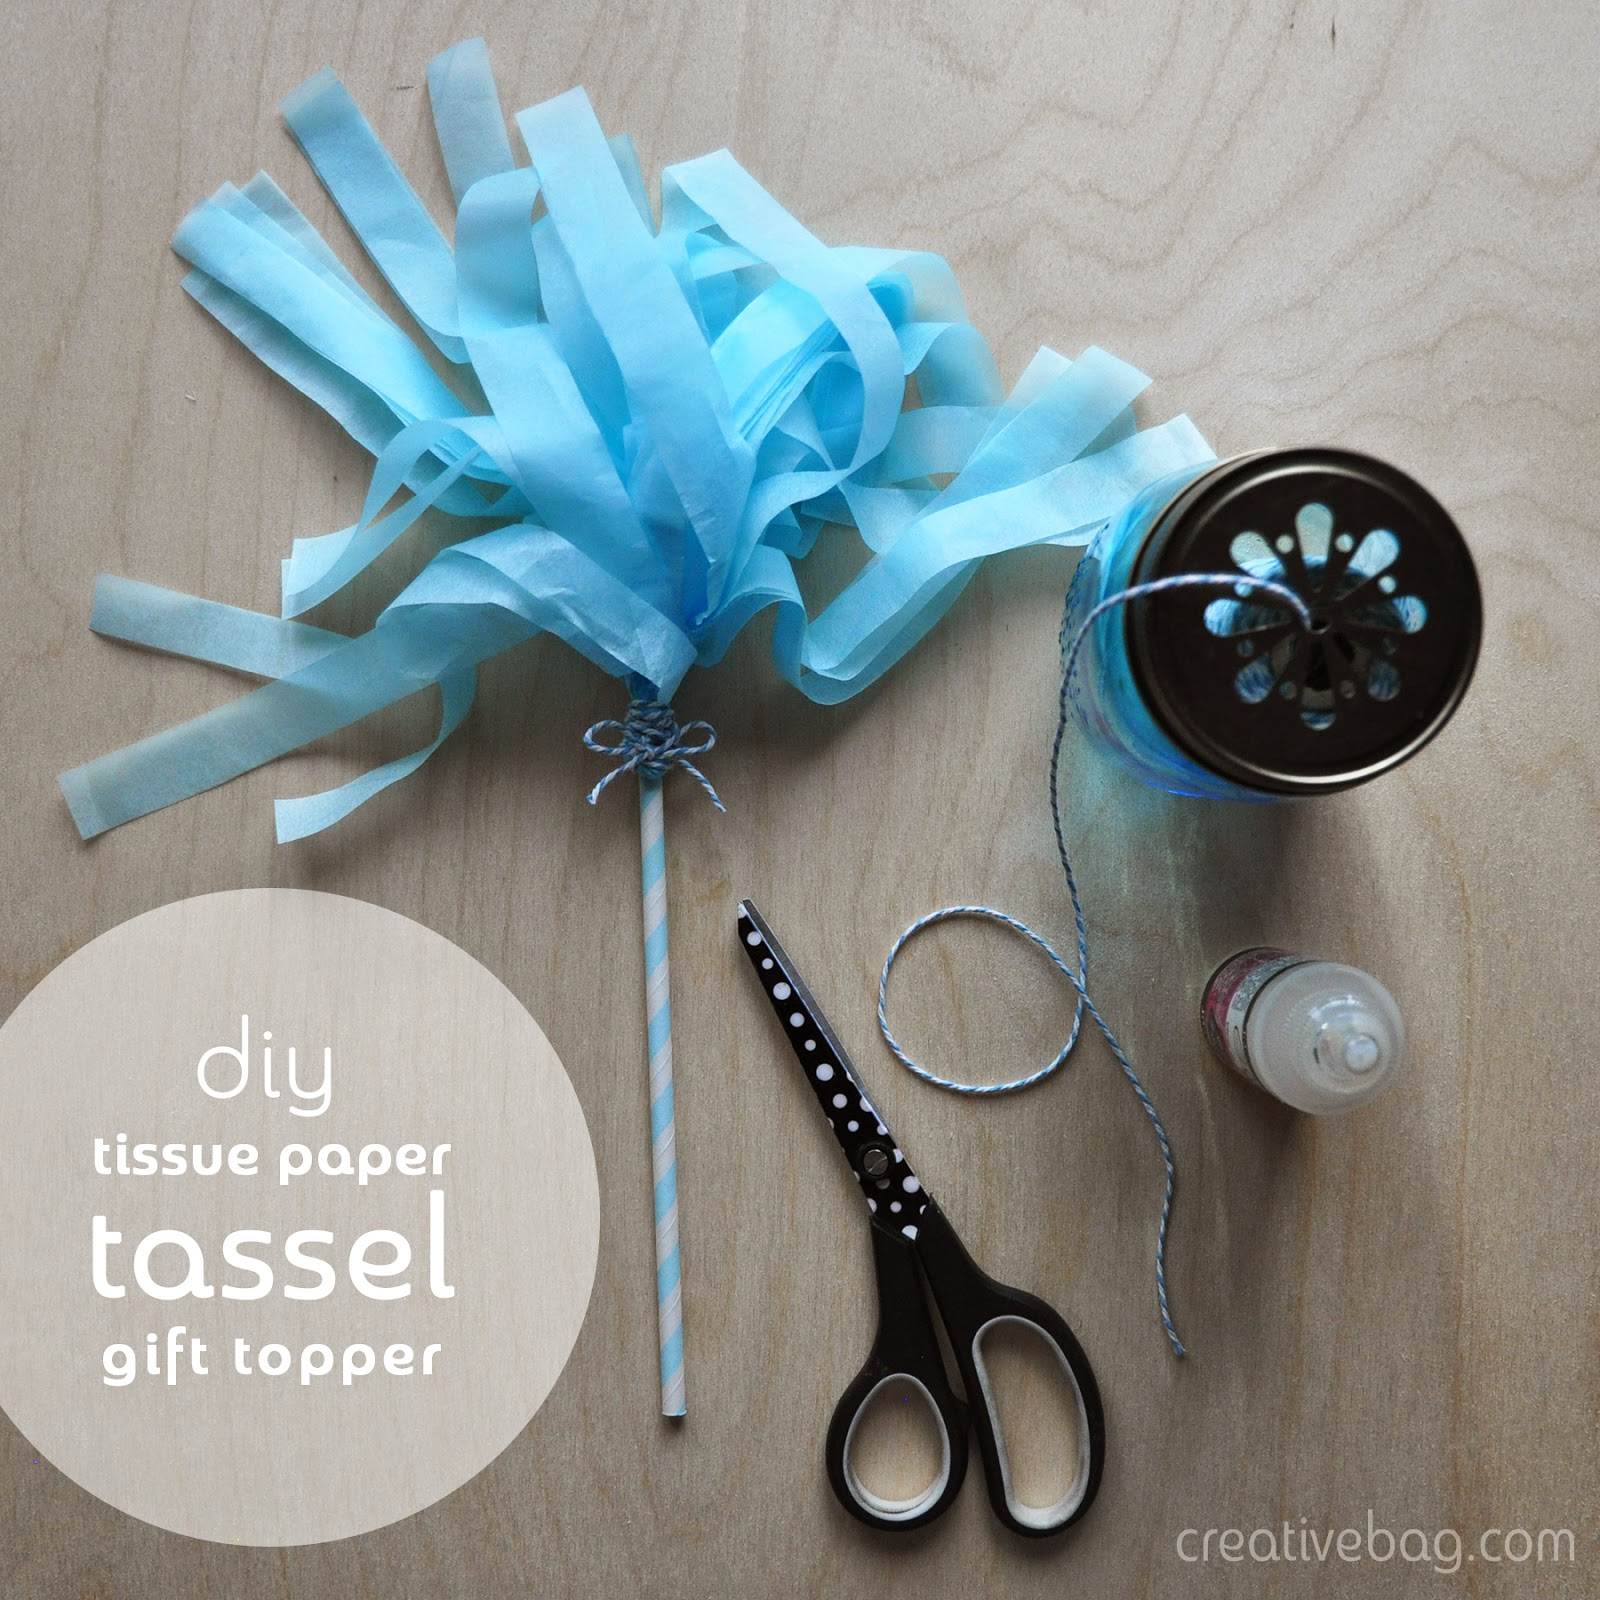 diy tissue paper tassel gift toppers by Lorrie Everitt from Creative Bag